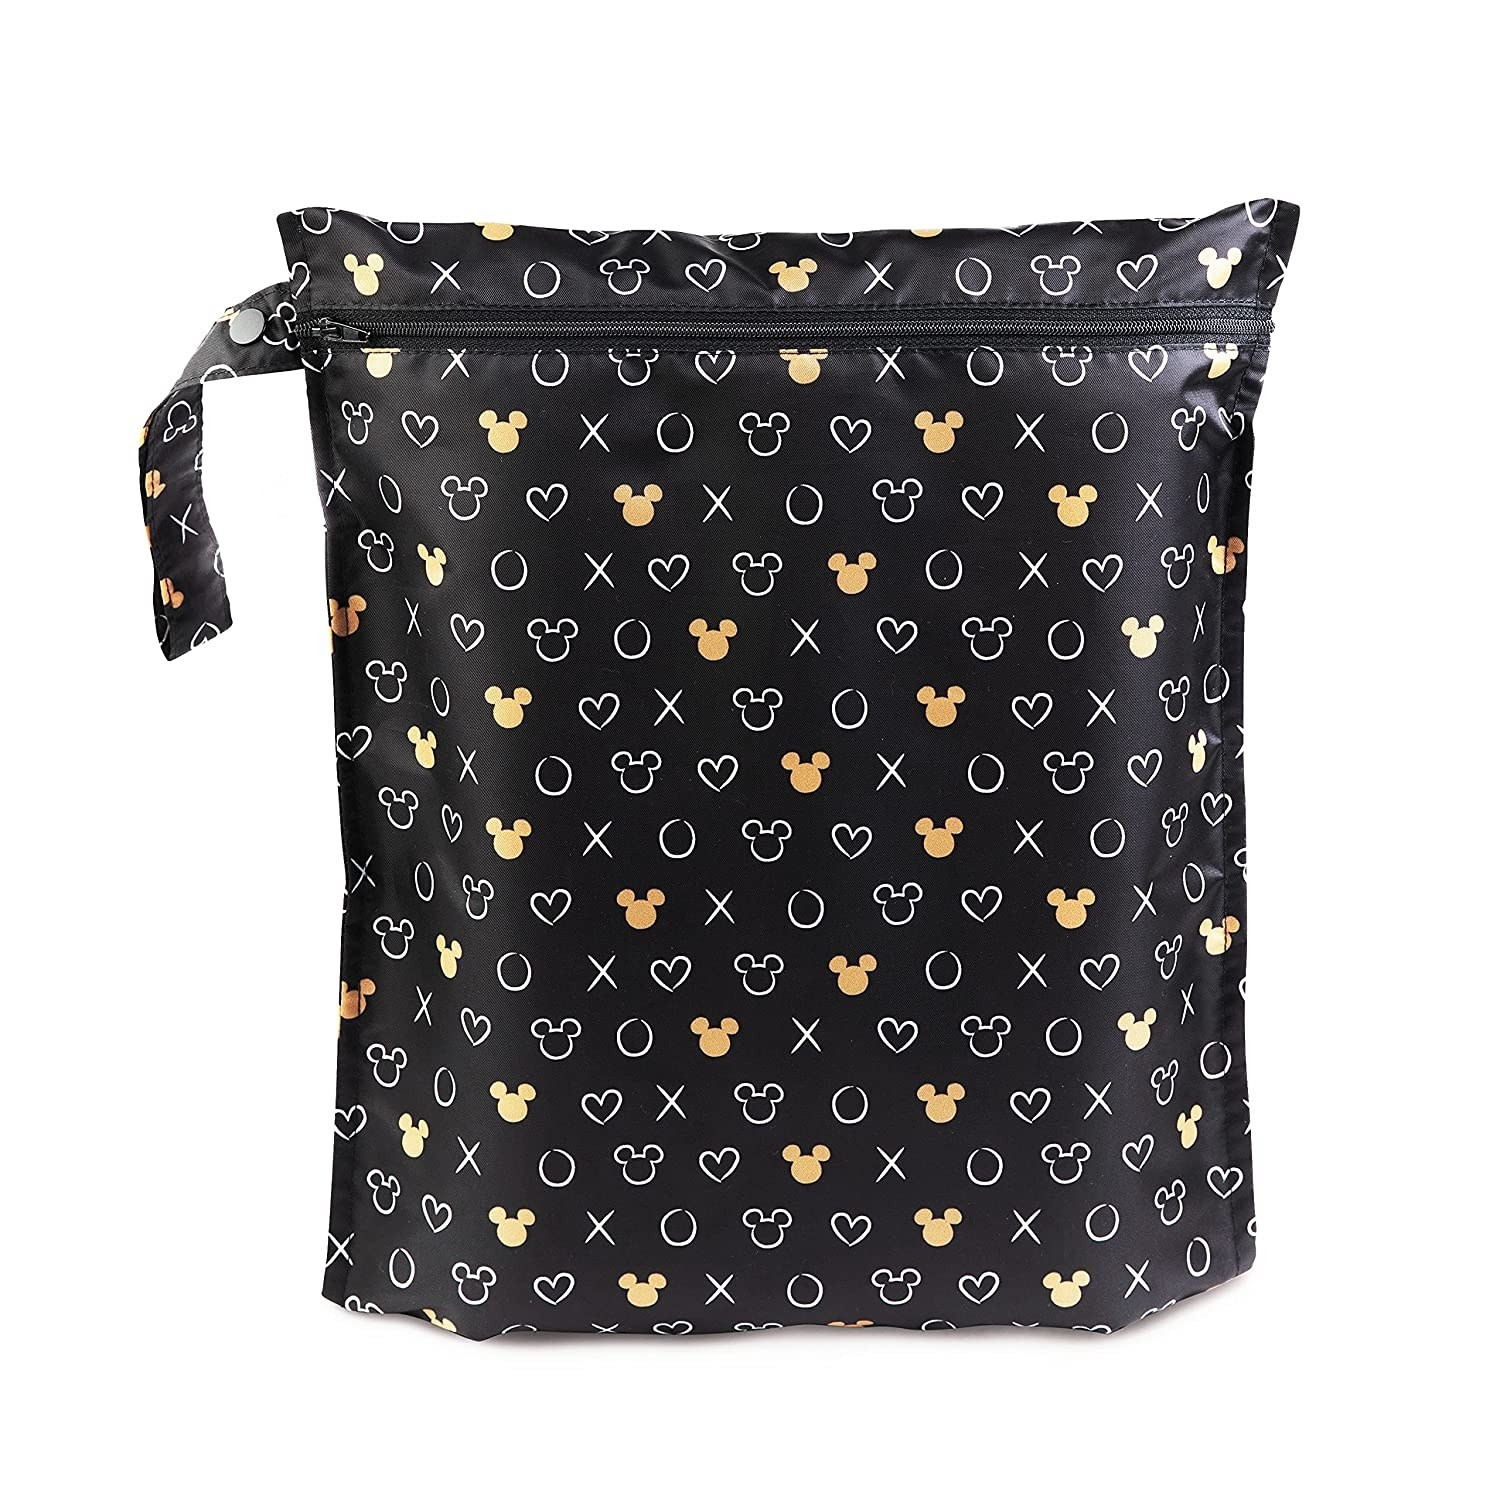 The wet bag in Minnie Mouse Icon print